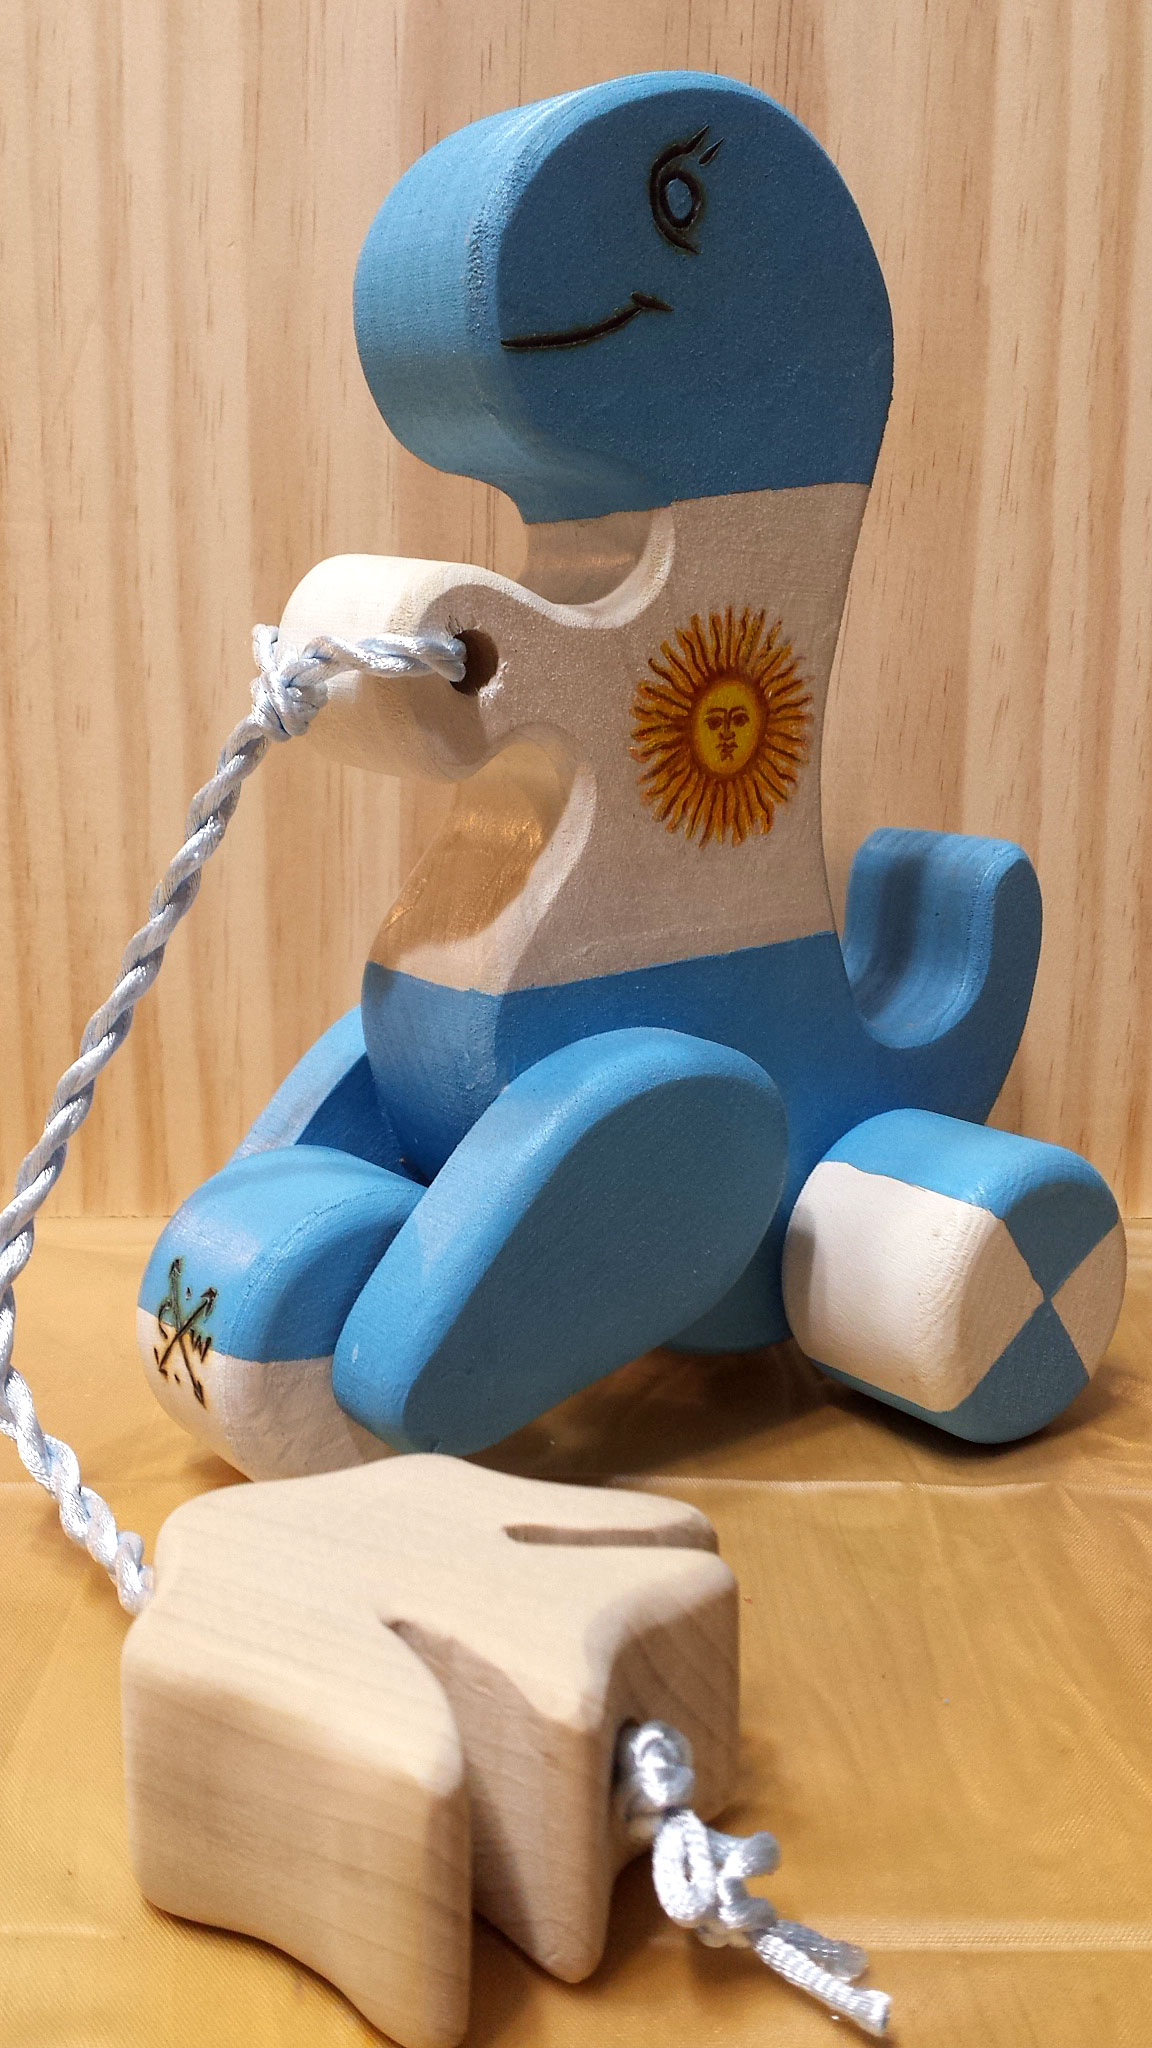 Dino pull toy hand painted with the Argentine flag